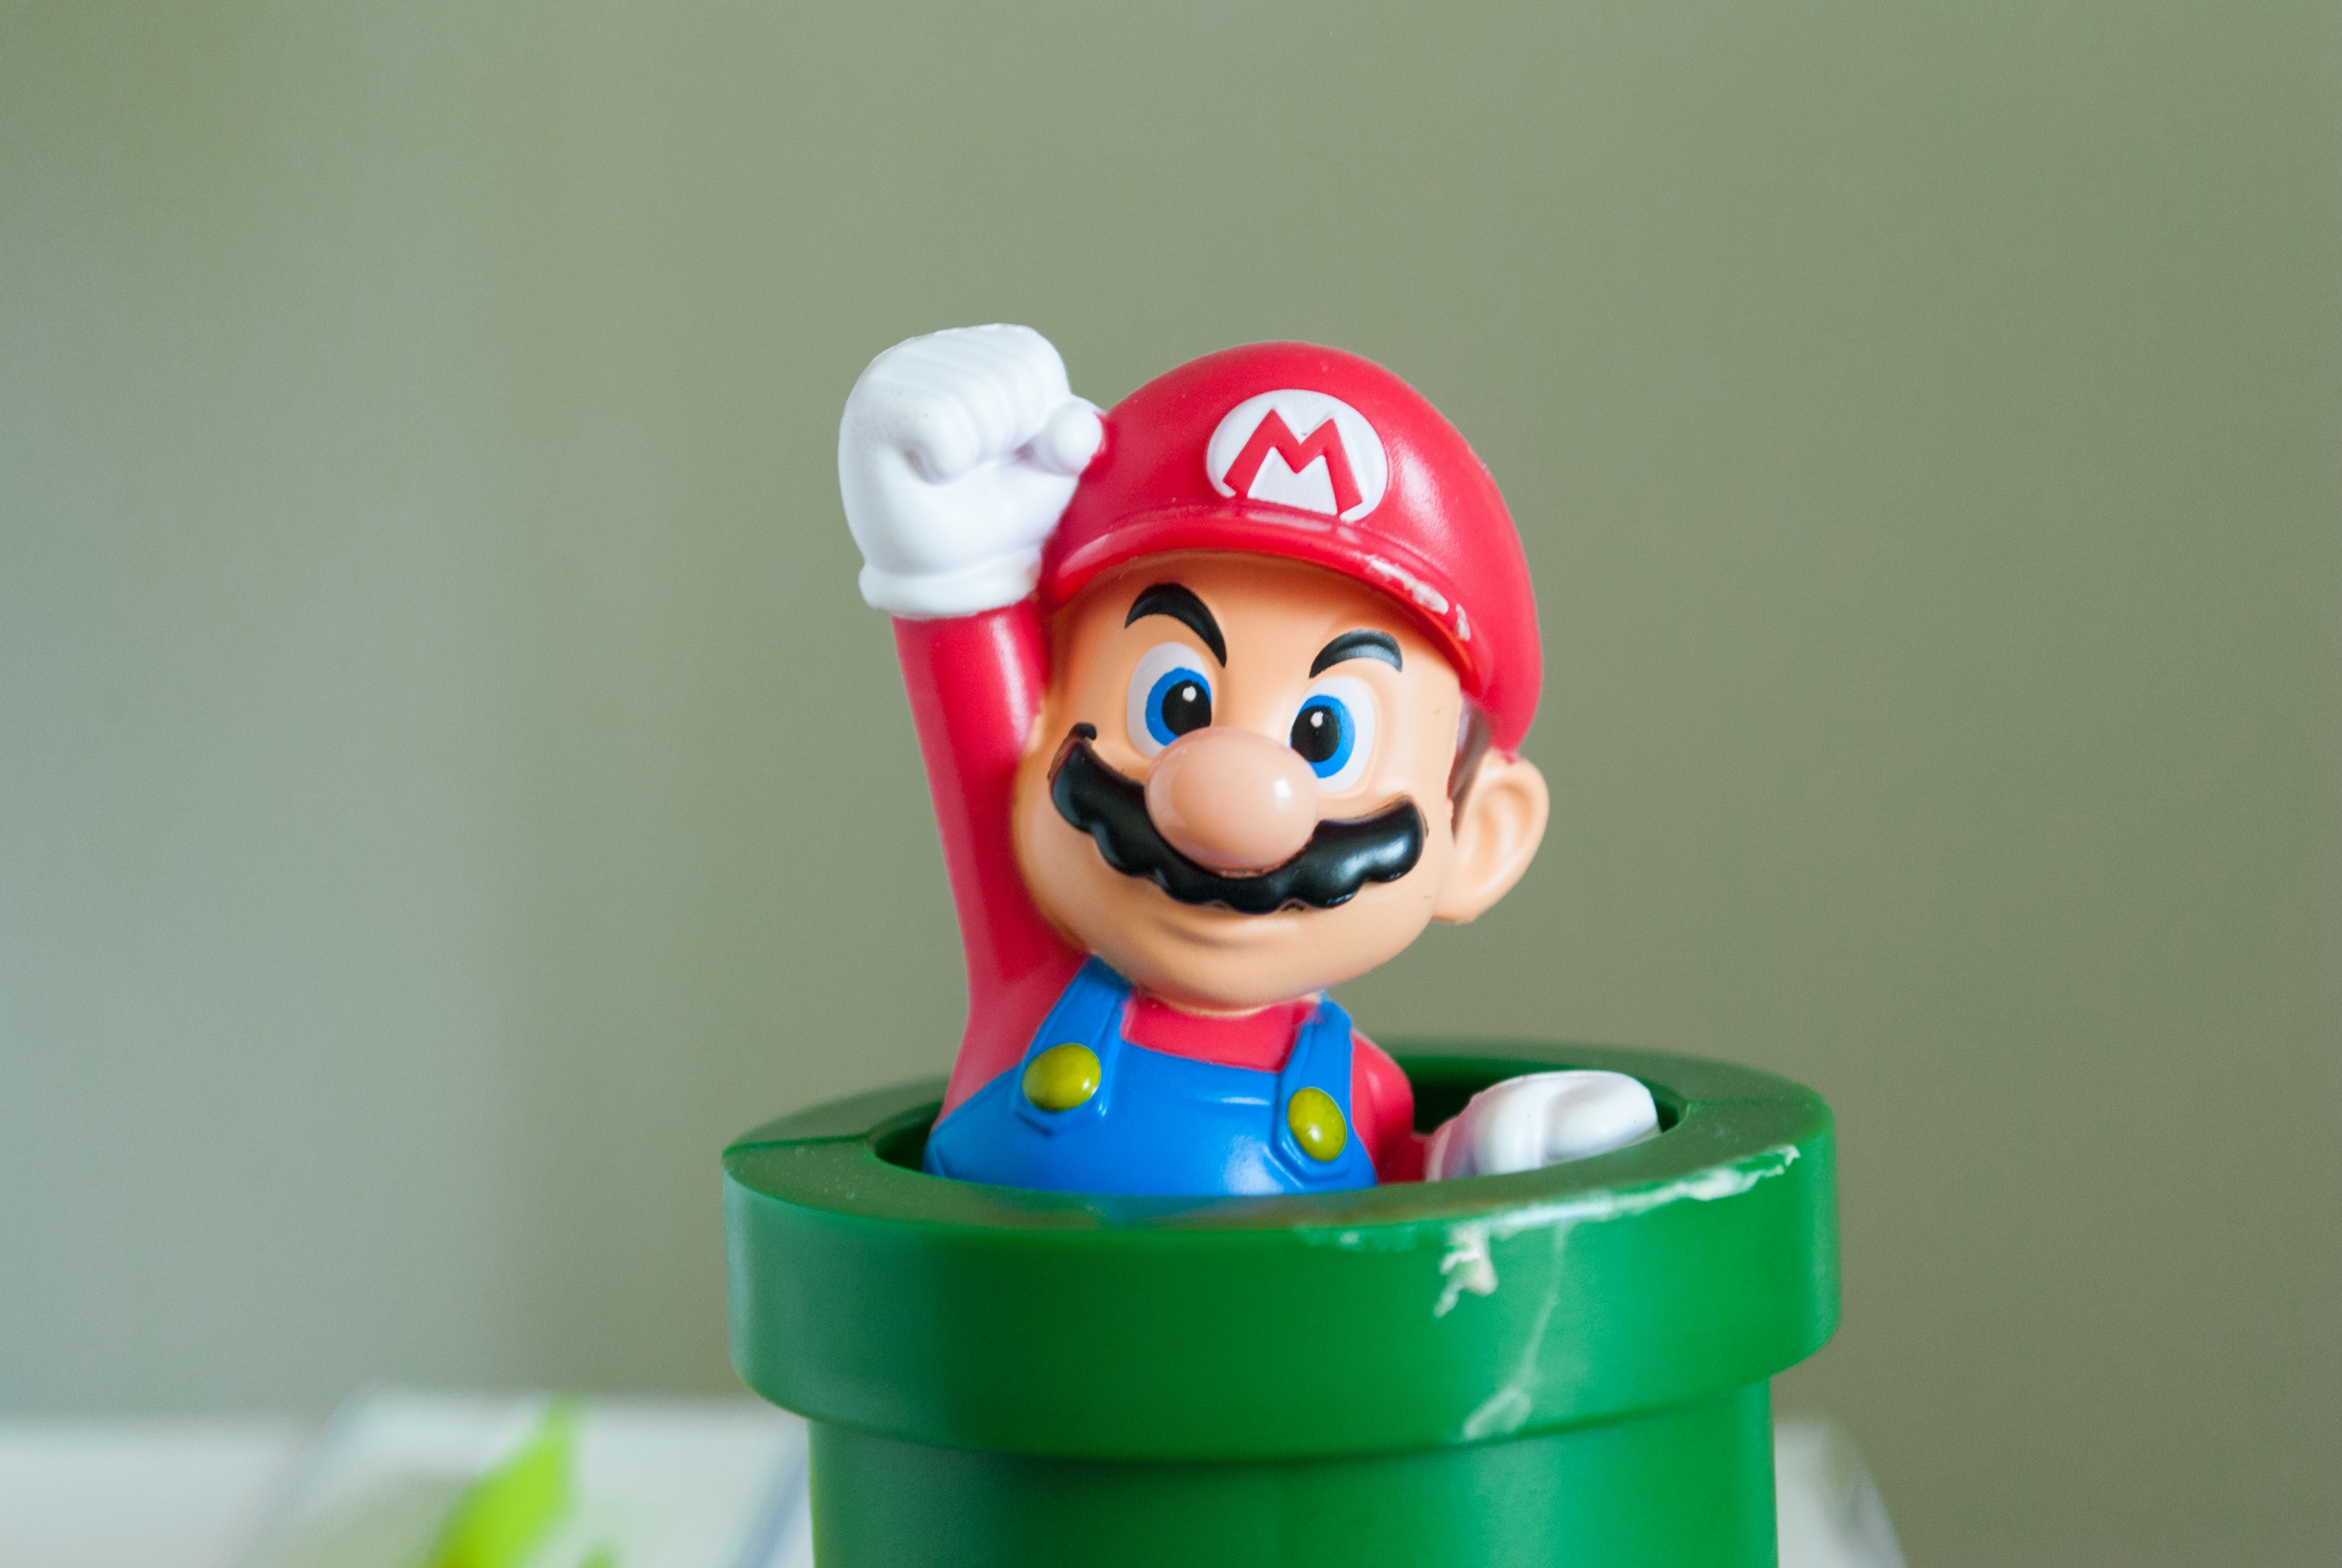 mario from super mario coming out of a warp pipe